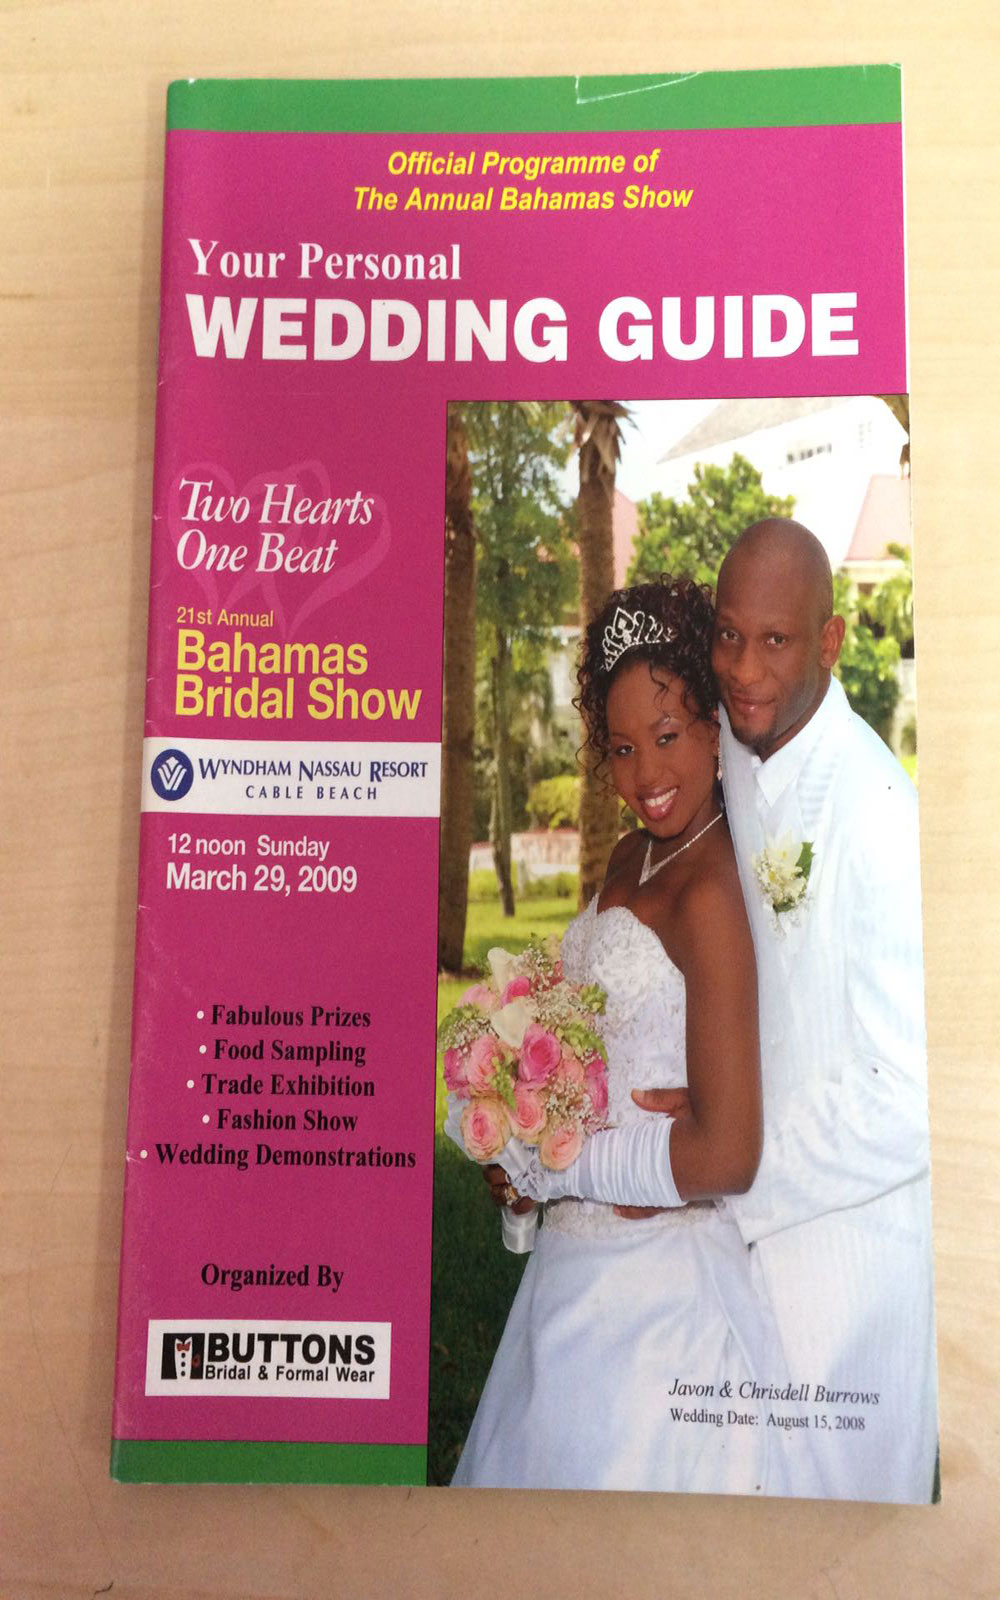 The Wedding Guide